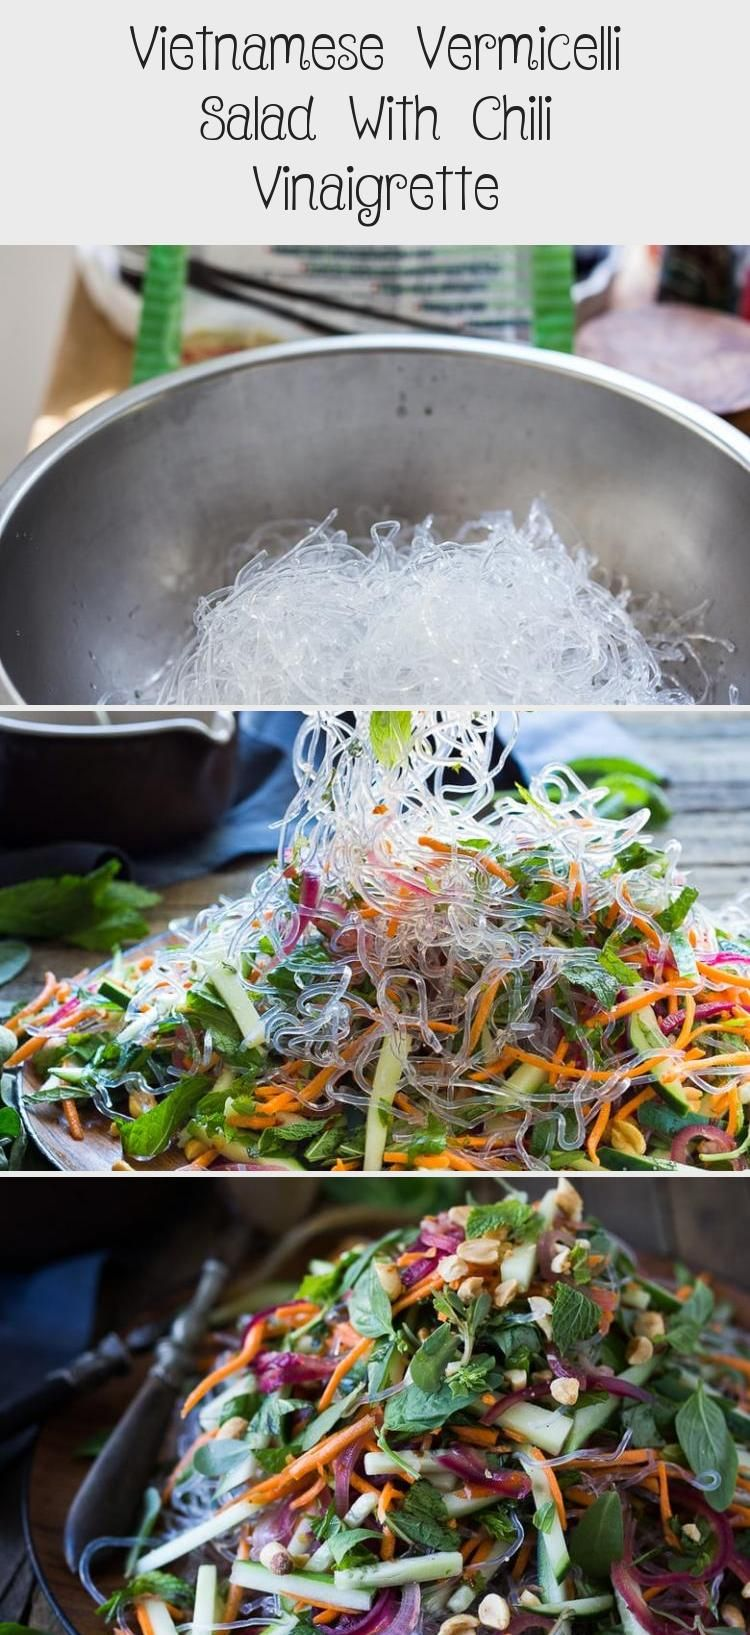 An incredible recipe for Vietnamese Vermicelli Salad w/ Sweet Chili Vinaigrette & Roasted peanuts - bursting with flavor and healthy and light! | www.feastingathome.com #Thaisalad #Kalesalad #saladBuah #Gardensalad #Chickpeasalad